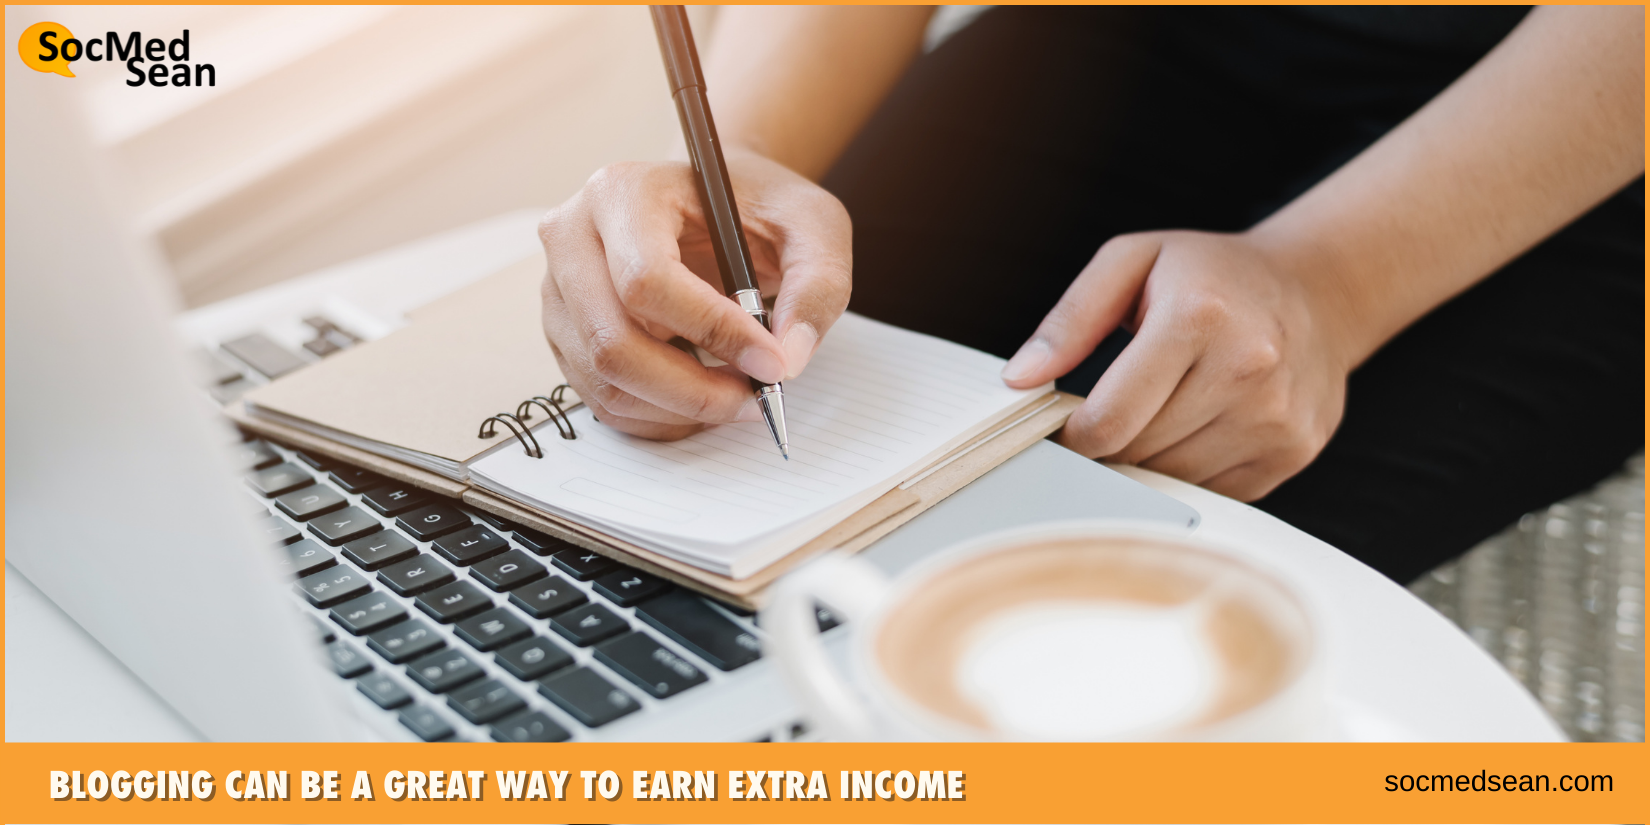 Blogging can be a great way to earn extra income